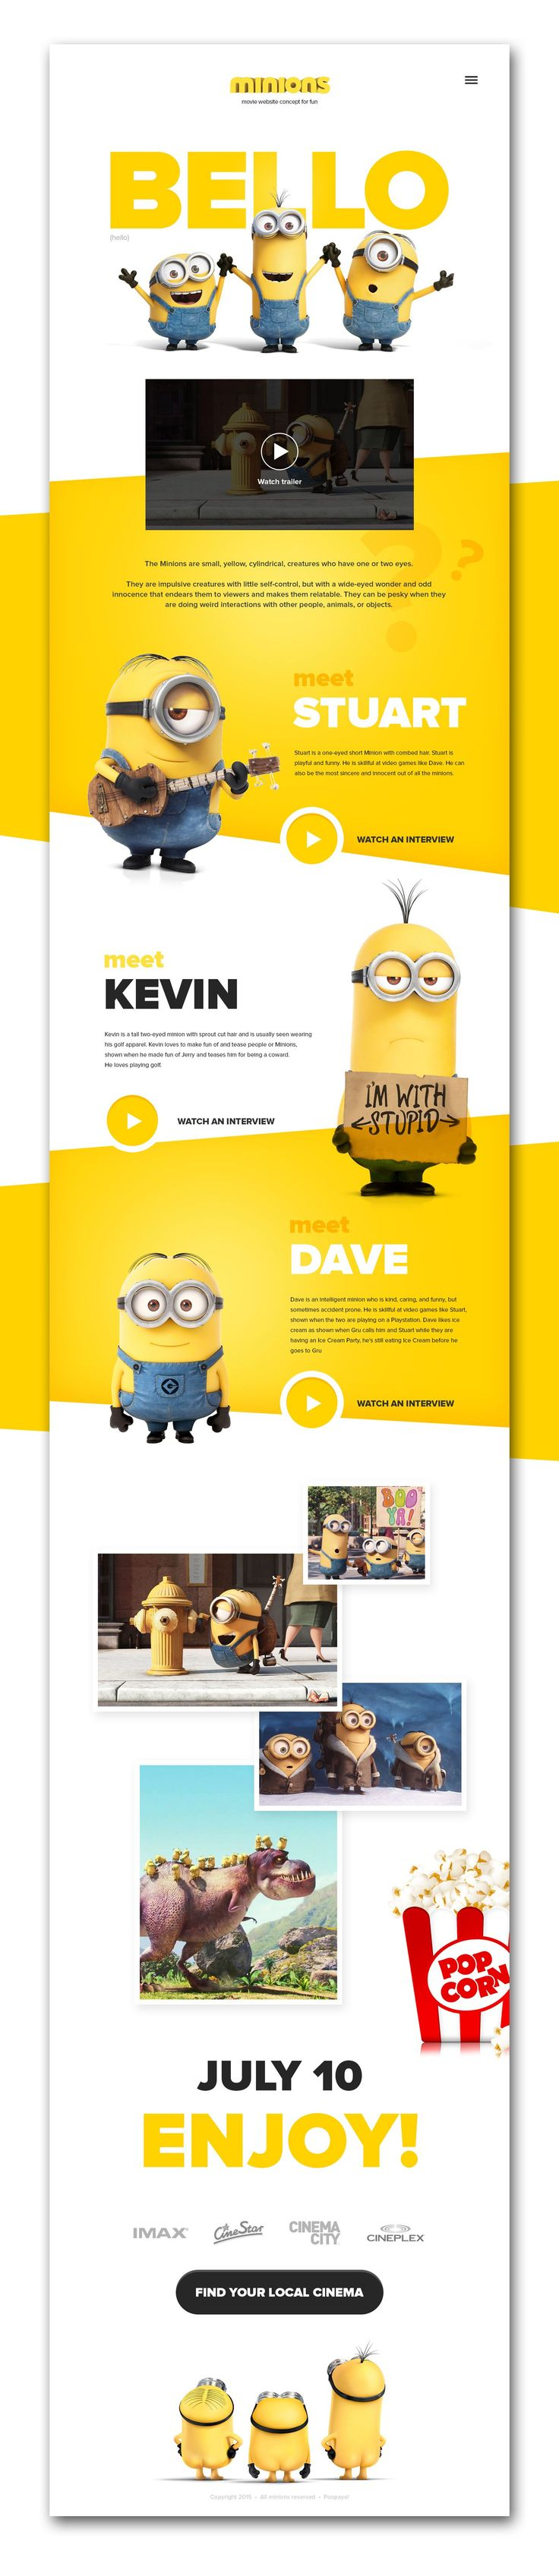 Minions homepage || Weekly web design Inspiration for everyone! Introducing Moire Studios a thriving website and…